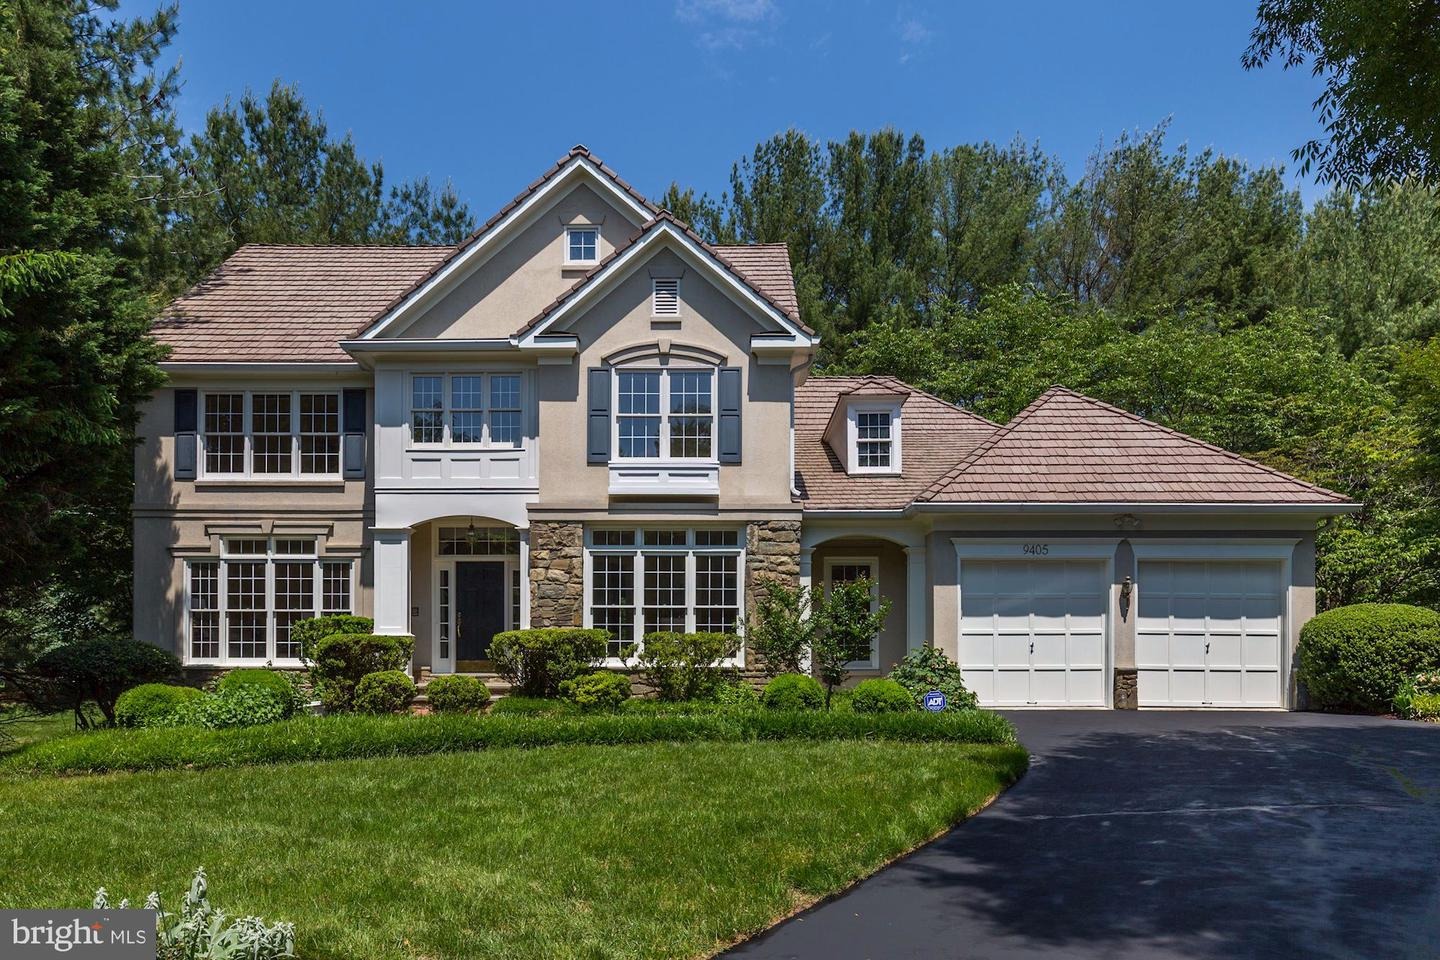 Single Family for Sale at 9405 Wing Foot Ct 9405 Wing Foot Ct Potomac, Maryland 20854 United States